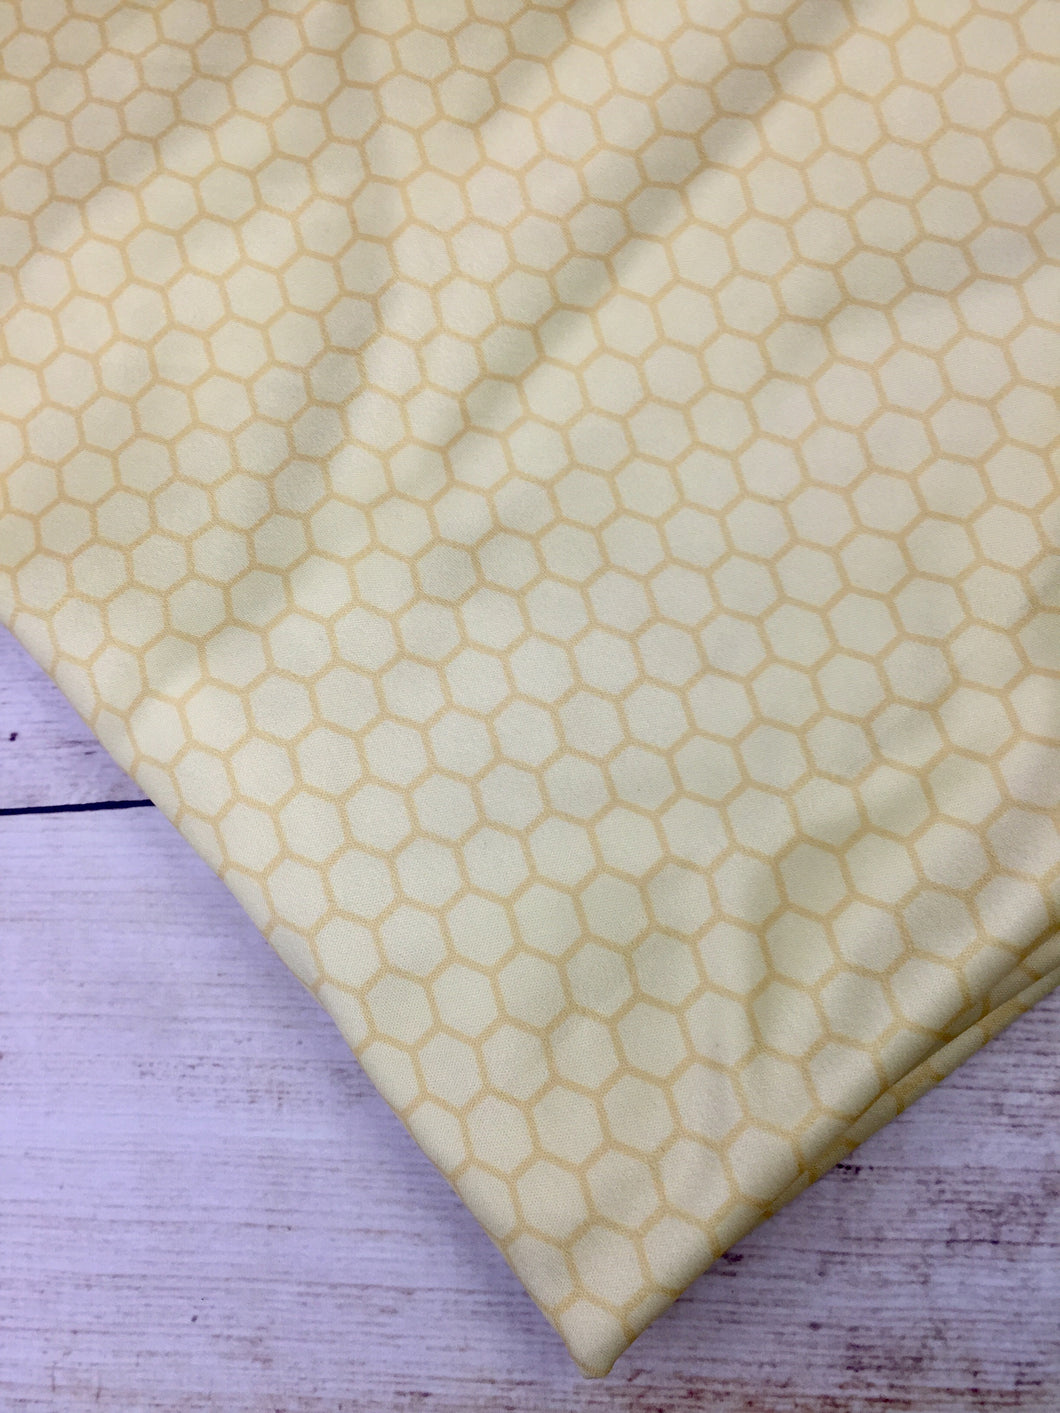 Yellow Honey Comb Polyester Interlock